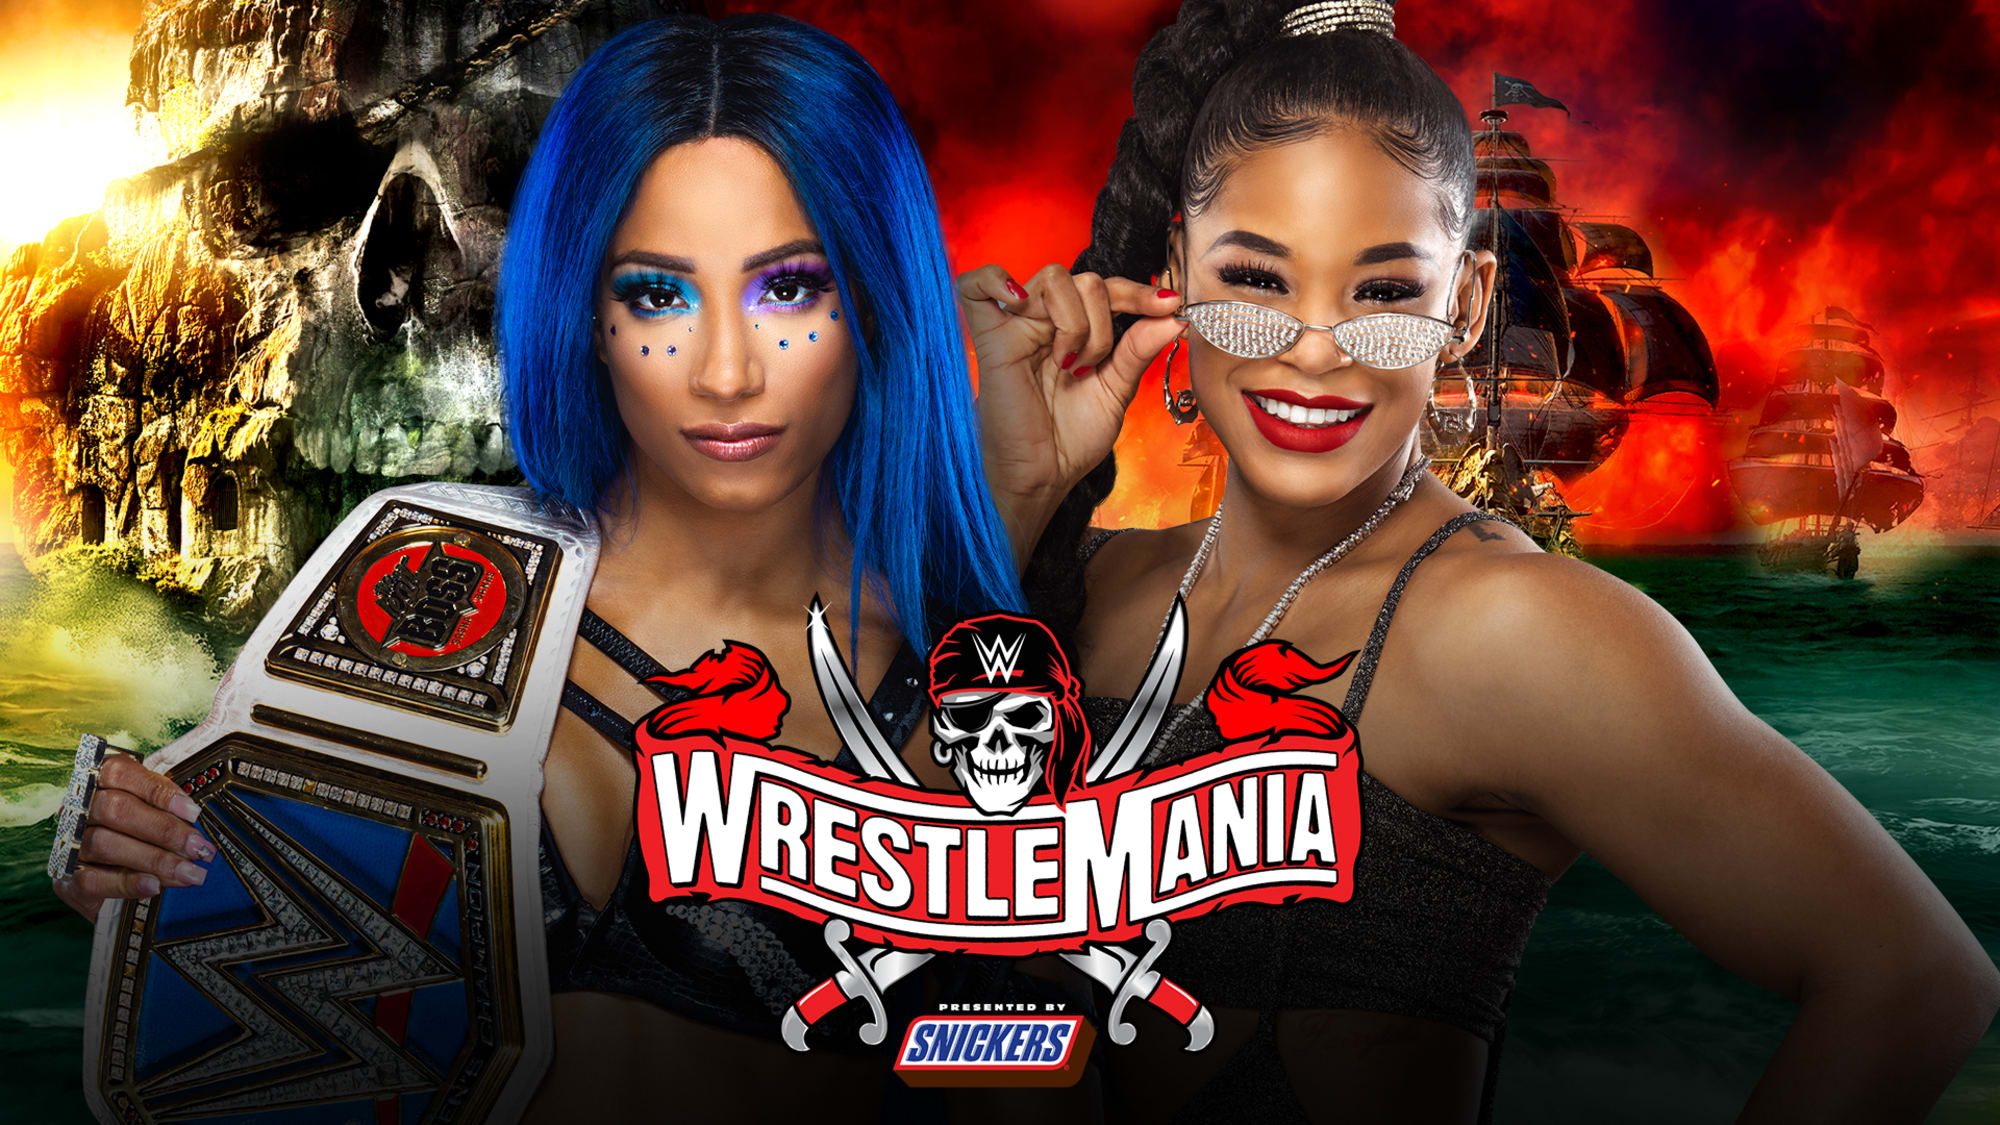 WWE WrestleMania 37 night one live results and highlights